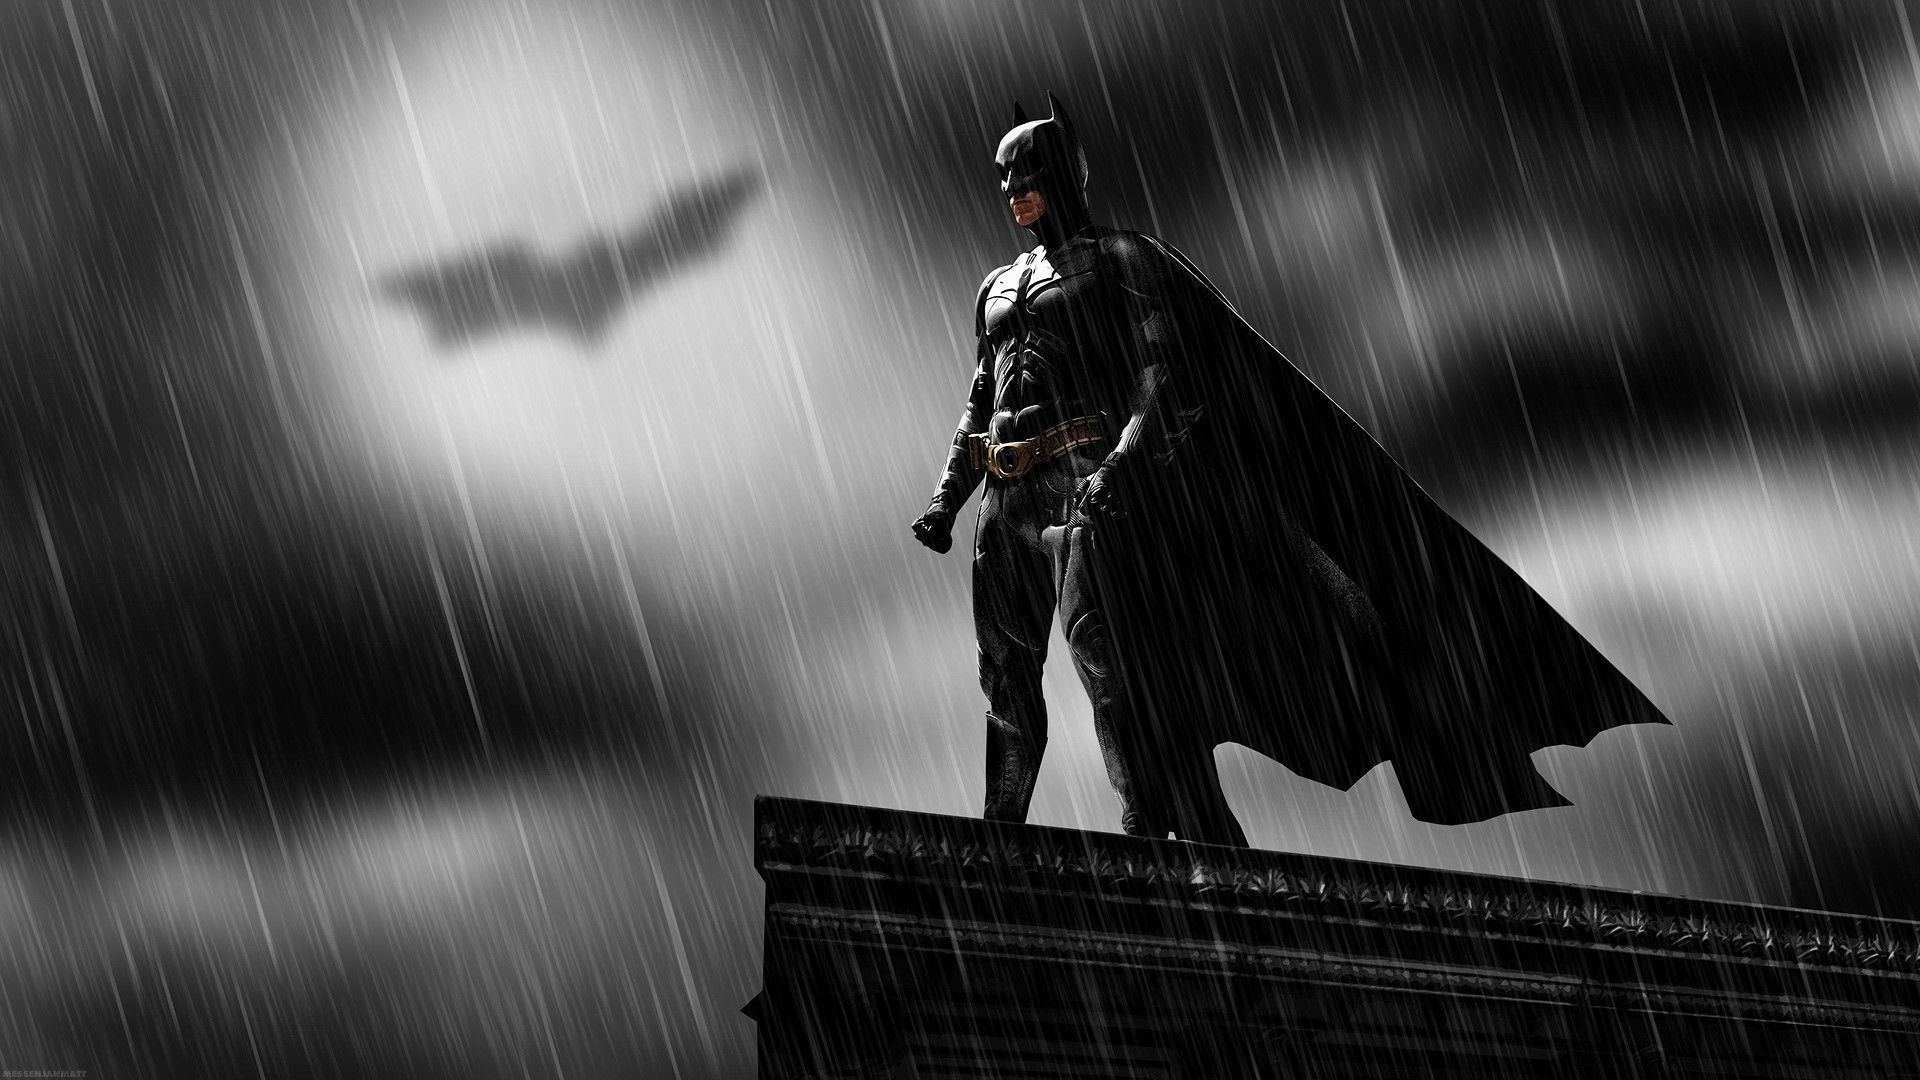 Top Batman Images In High Quality Freshwall